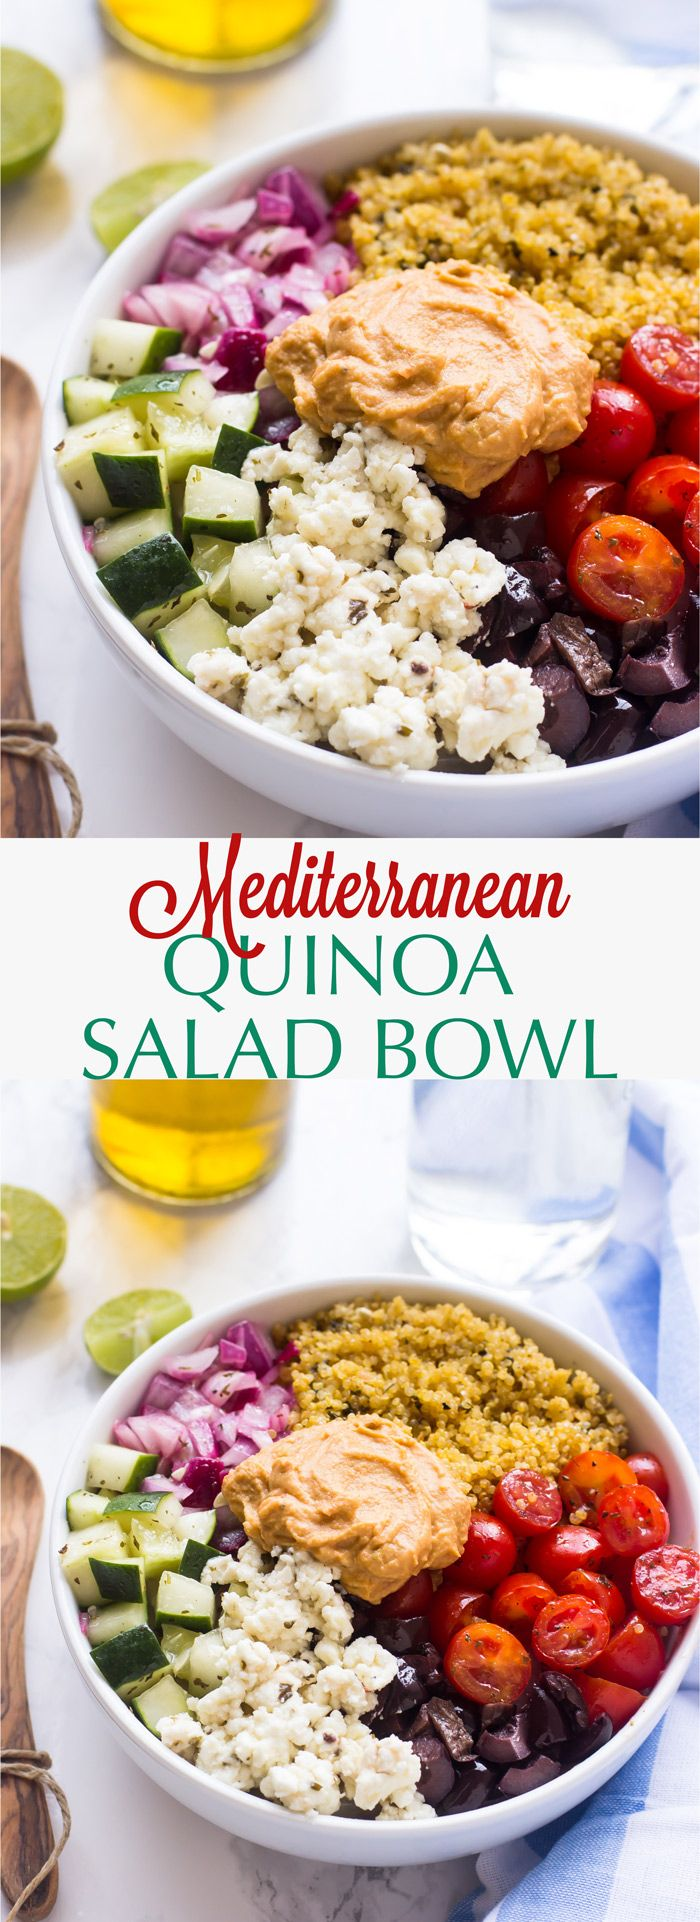 This Mediterranean Quinoa Salad Bowl is loaded with delicious and filling veggies, topped with creamy hummus and comes together in just 20 minutes! | jessicainthekitchen.com